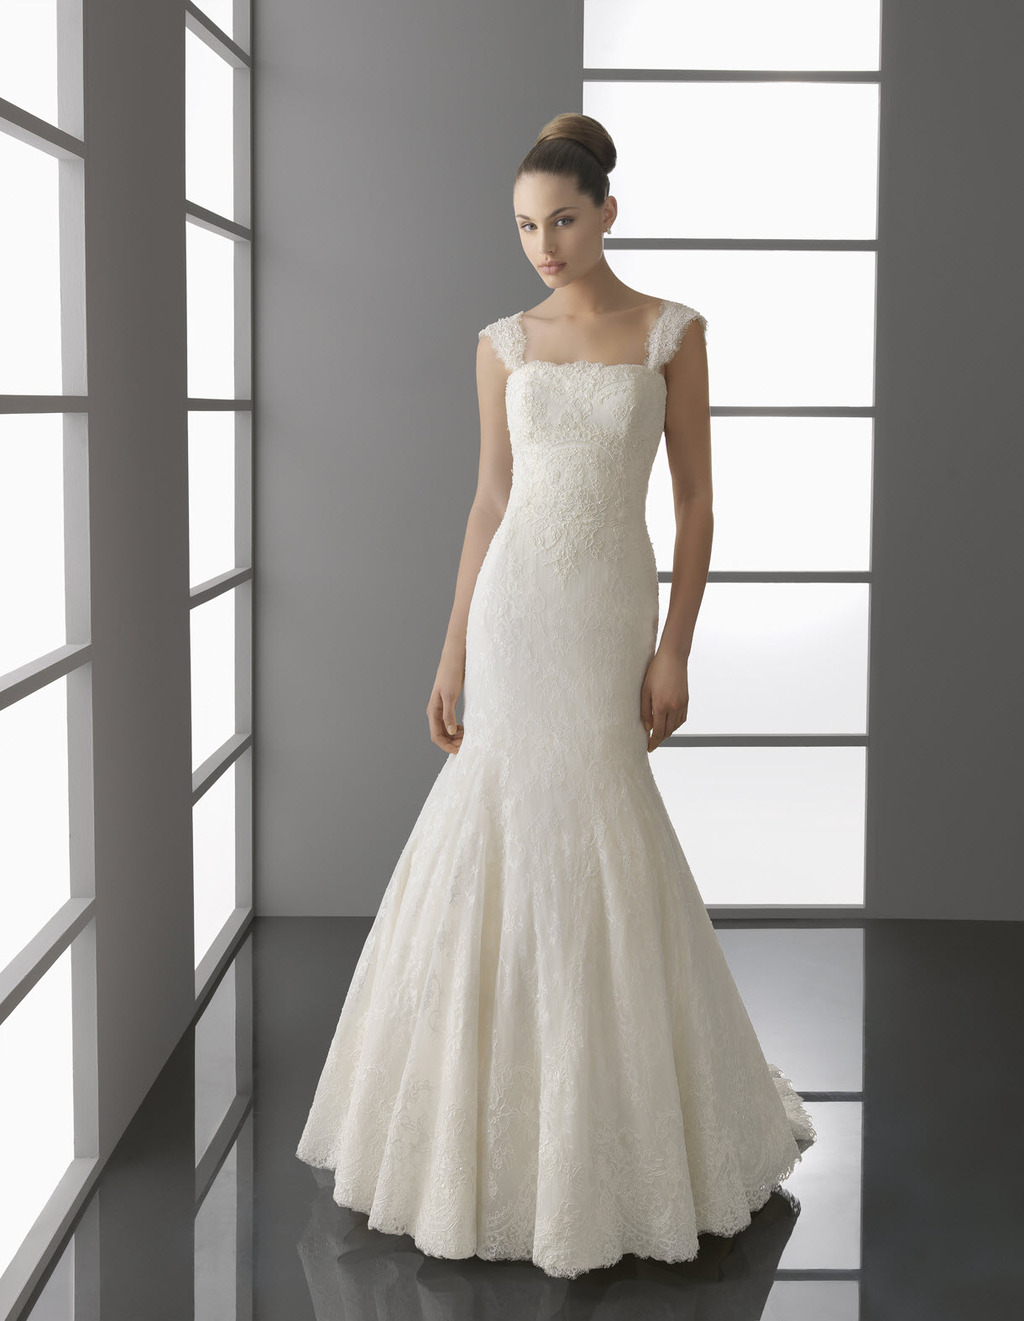 Palmira-spring-2012-wedding-dress-aire-barcelona-ivory-lace-traditional-a-line-bridal-gown.full